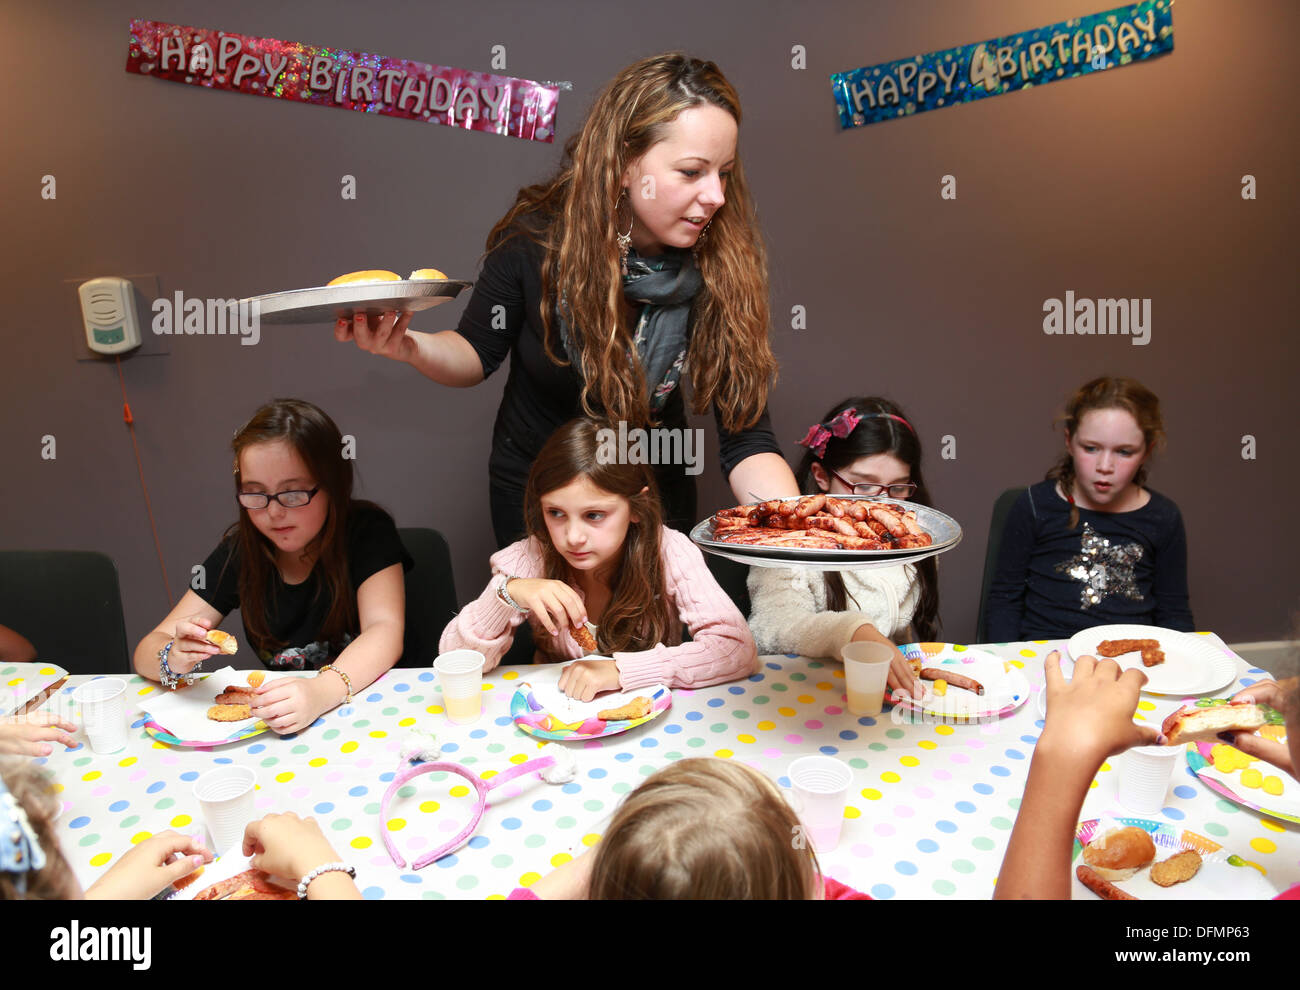 Kid's birthday party - Stock Image